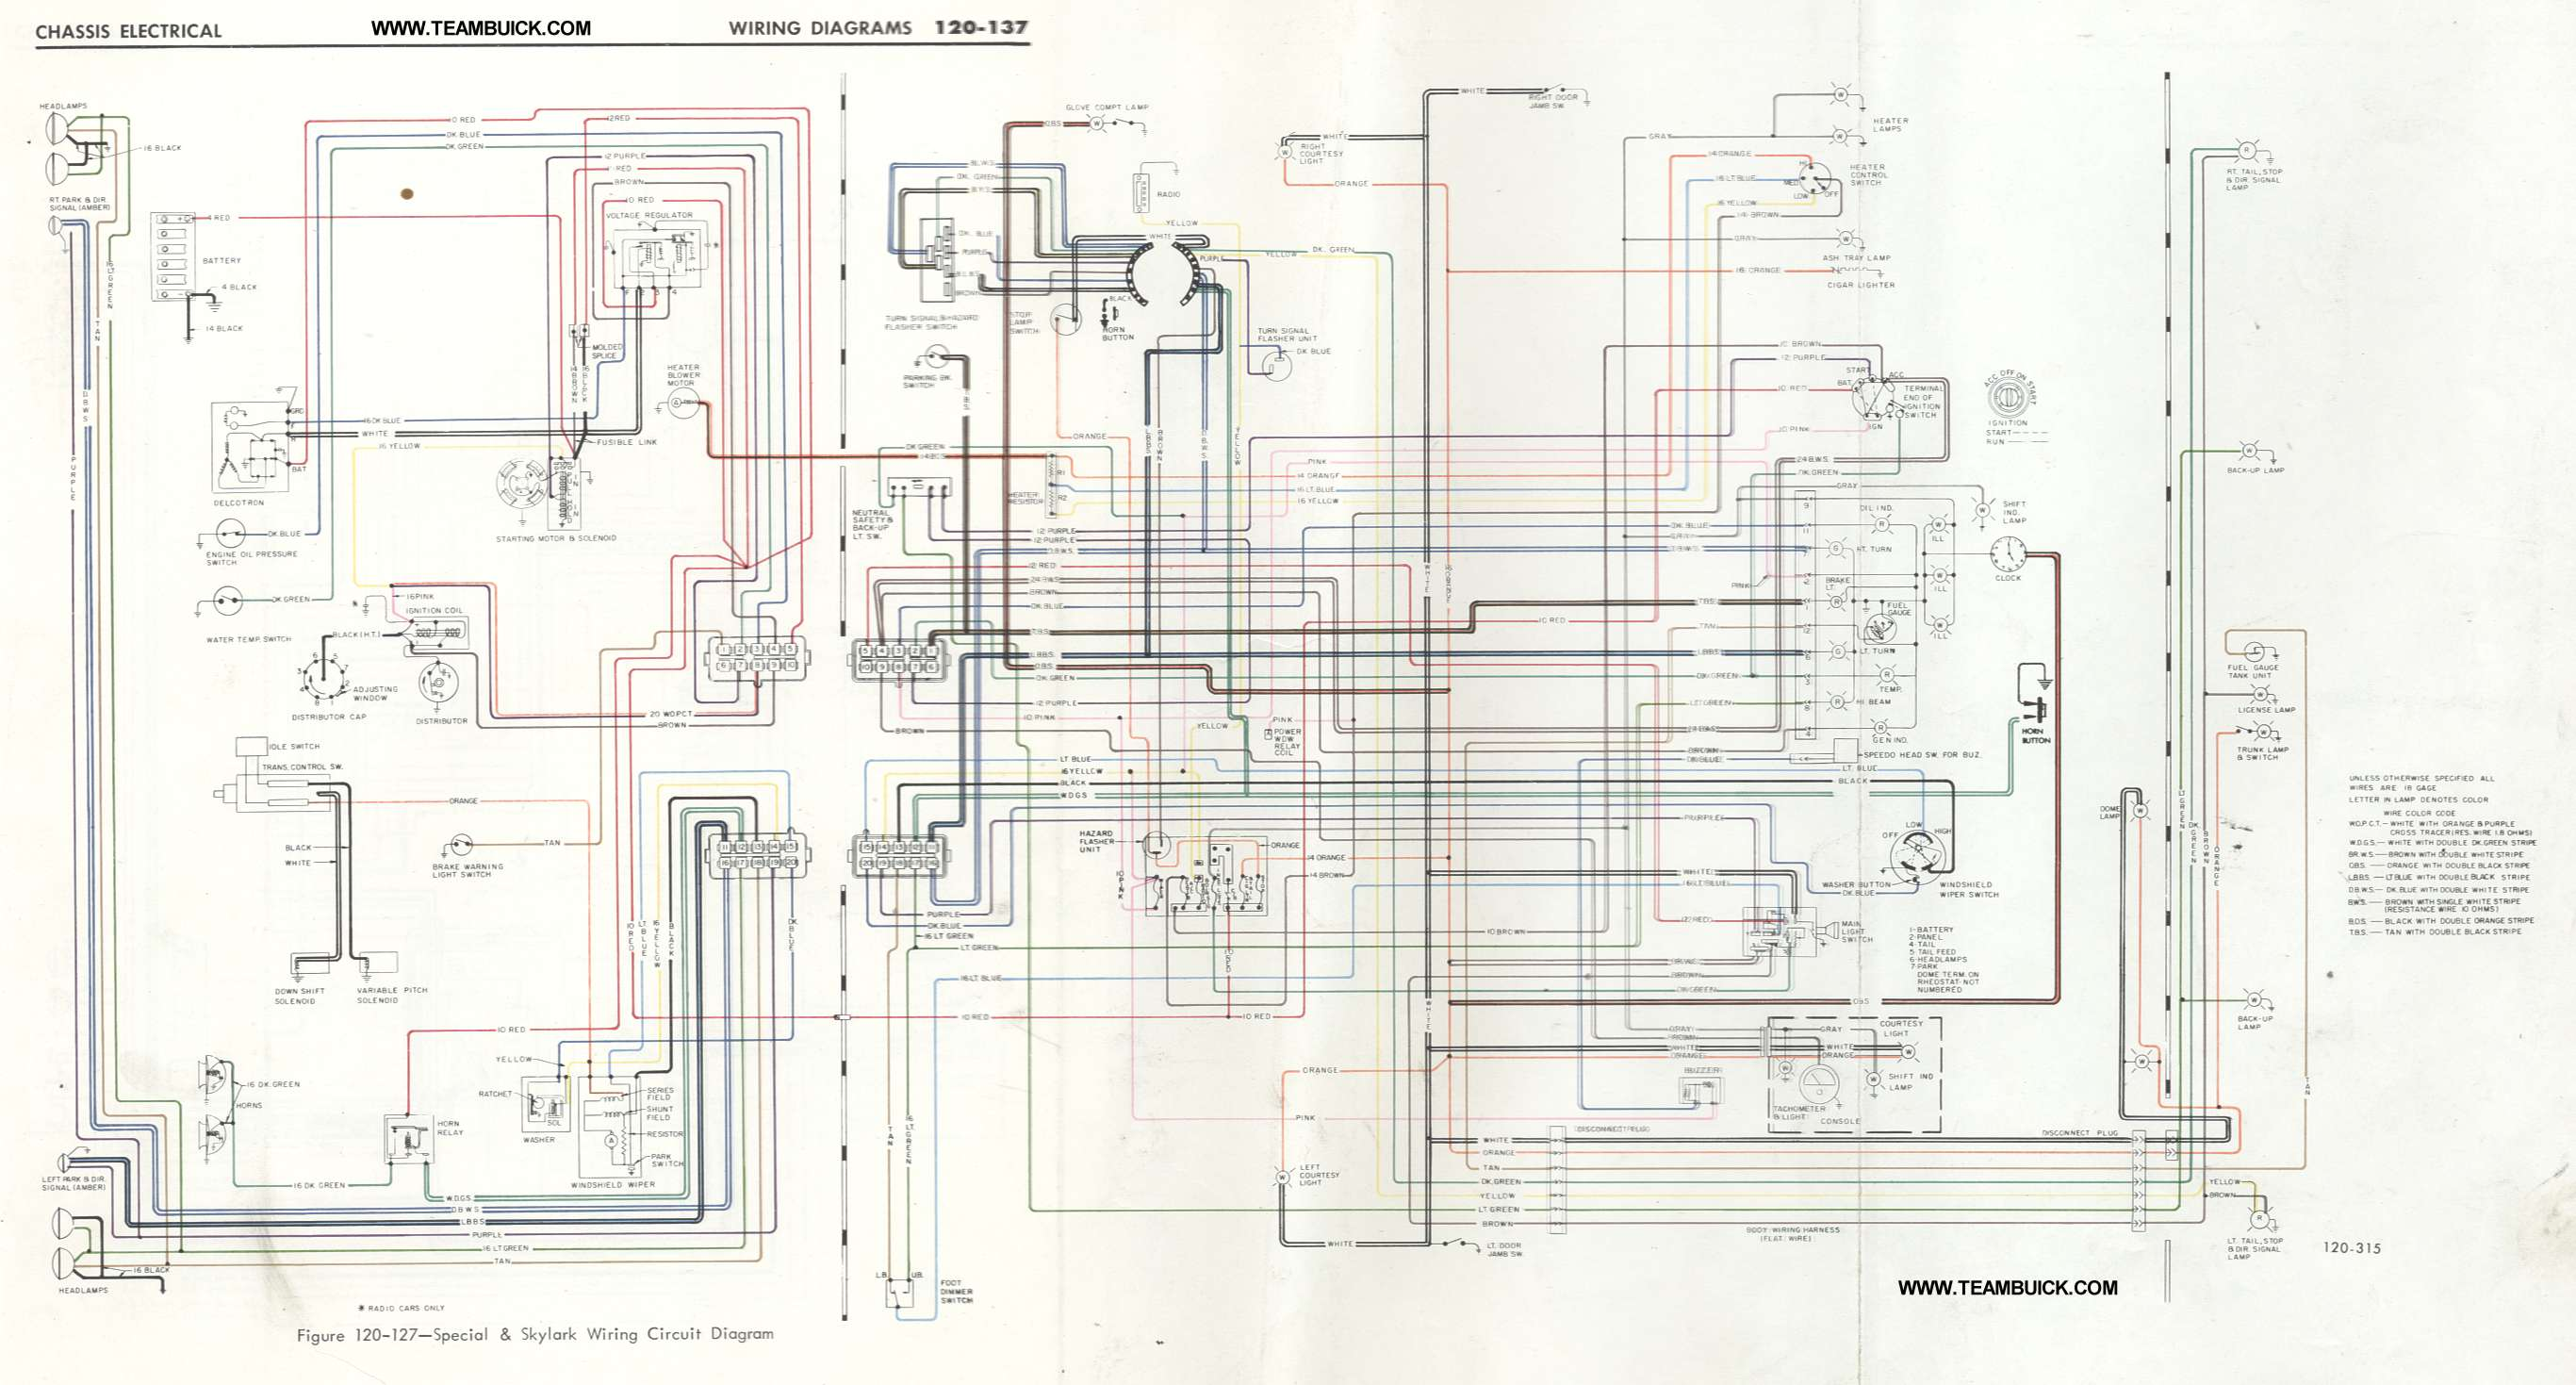 Tafabe94s Soup This Is The Wiring Diagram I Goti Did Not Wire It Like